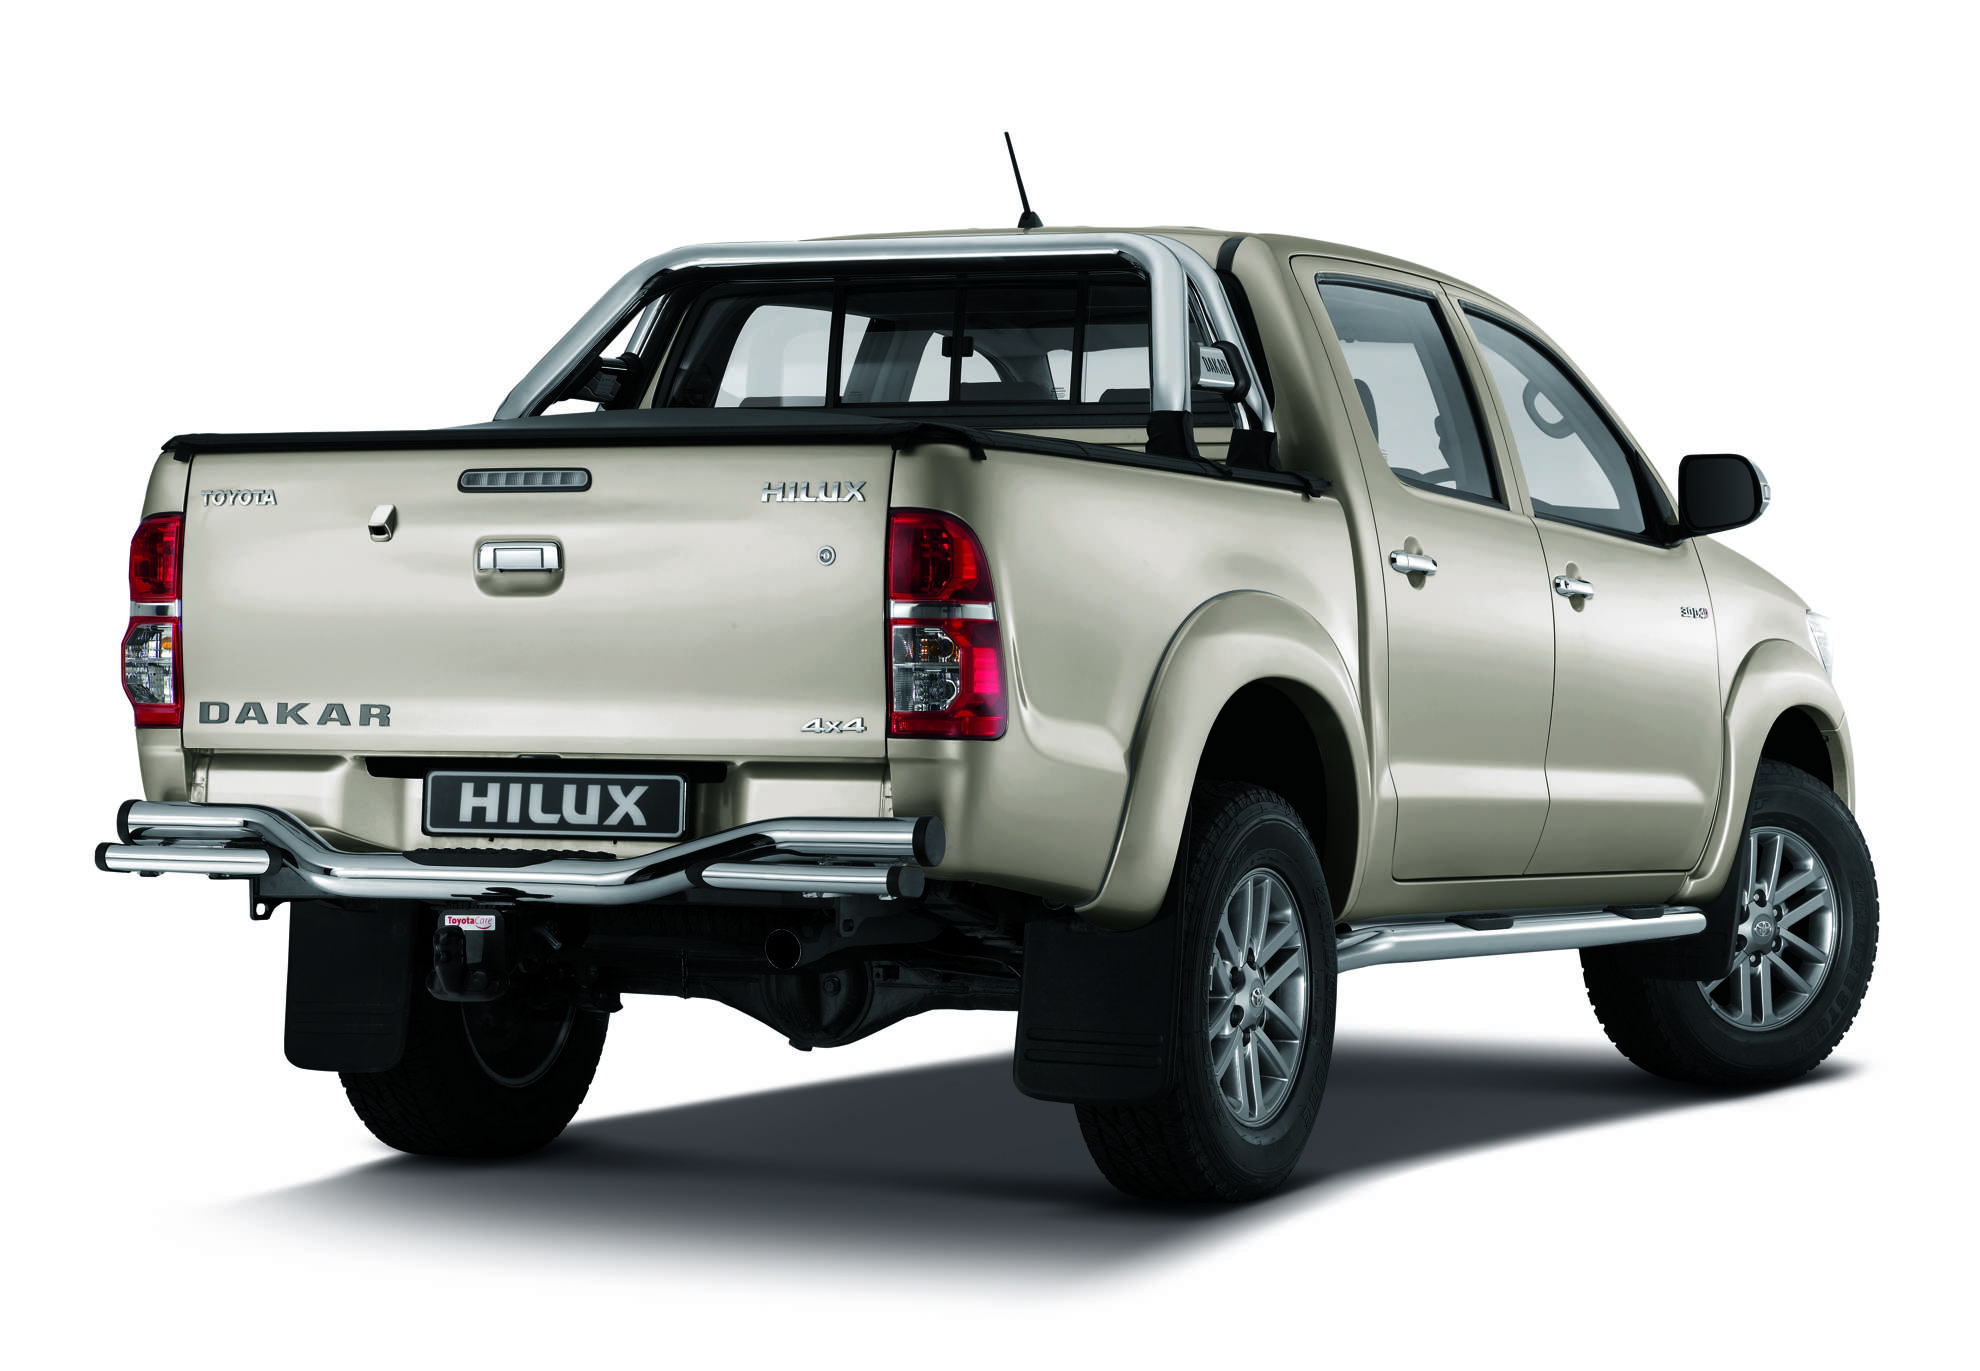 toyota dakar hilux for sale. Black Bedroom Furniture Sets. Home Design Ideas